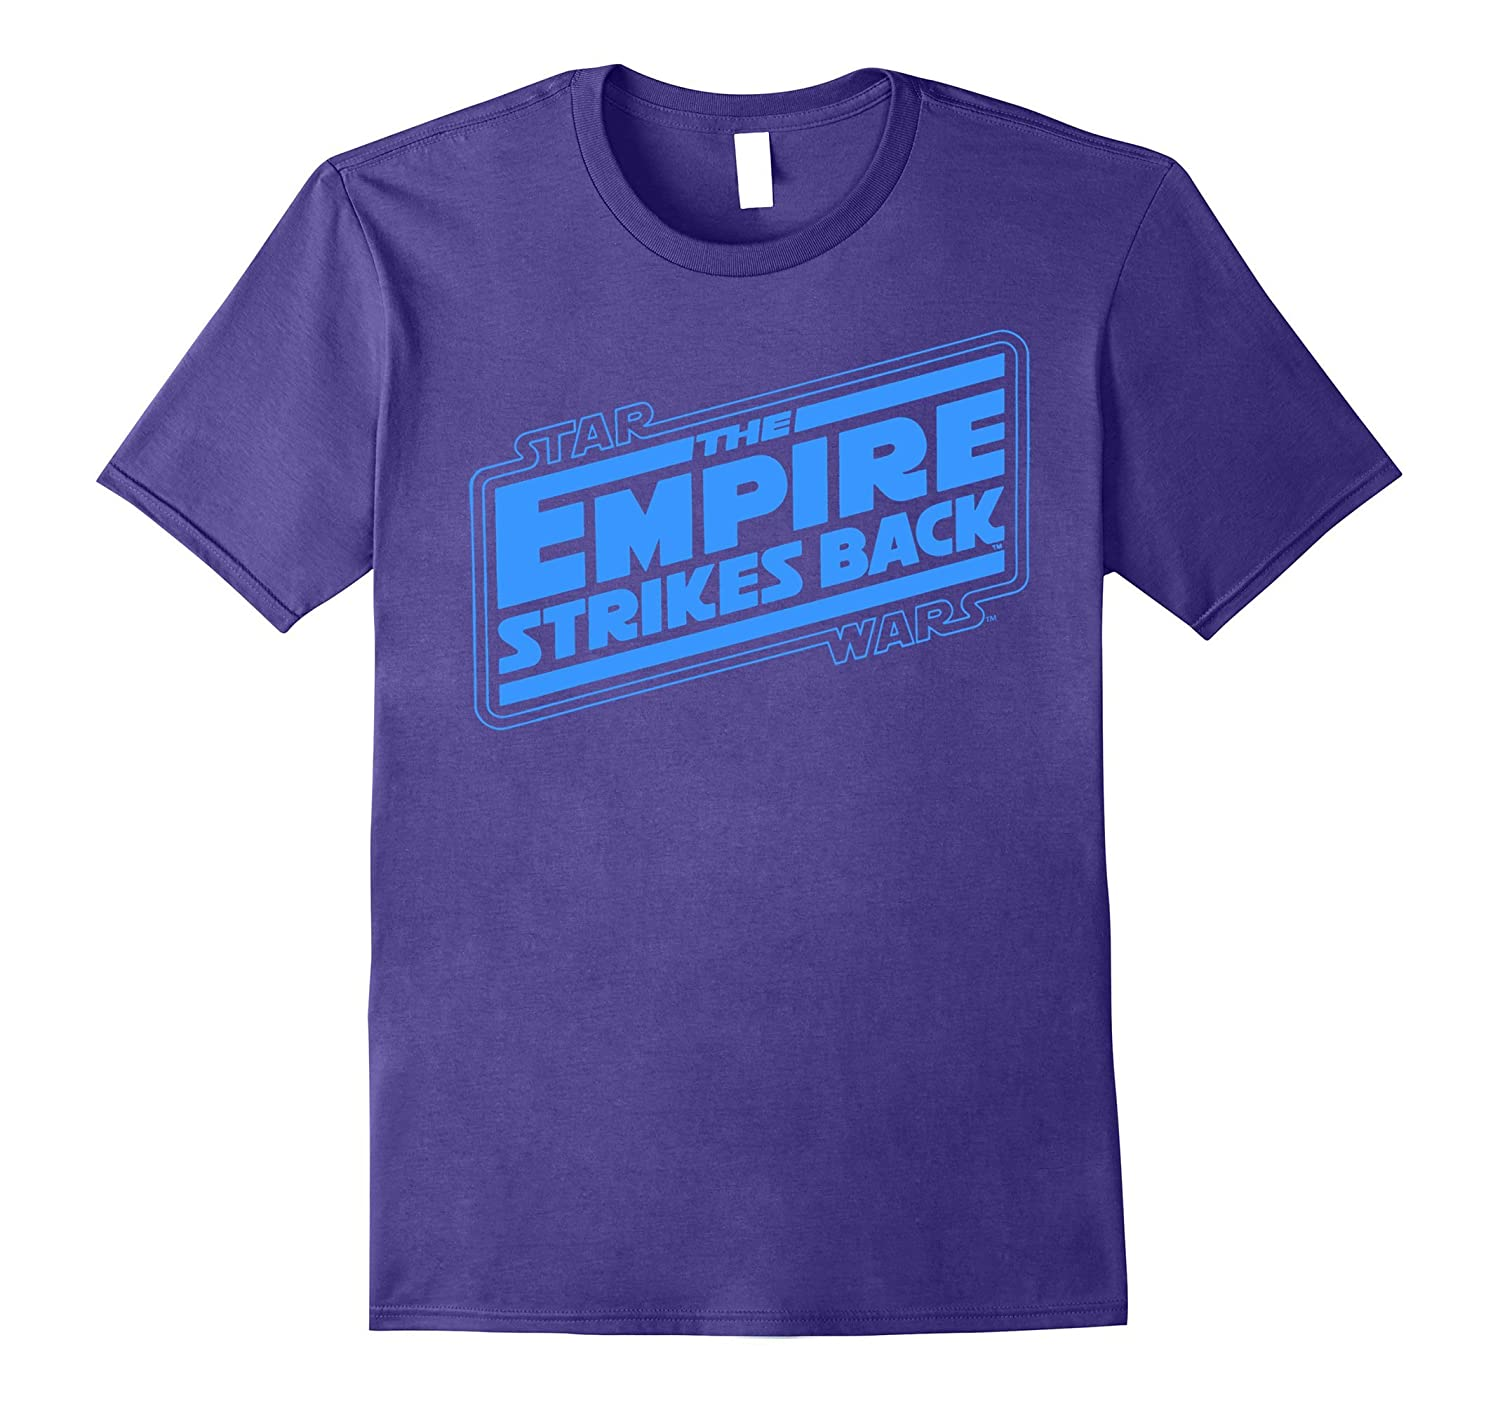 Star wars empire strikes back logo graphic t shirt pl for Shirts with graphics on the back